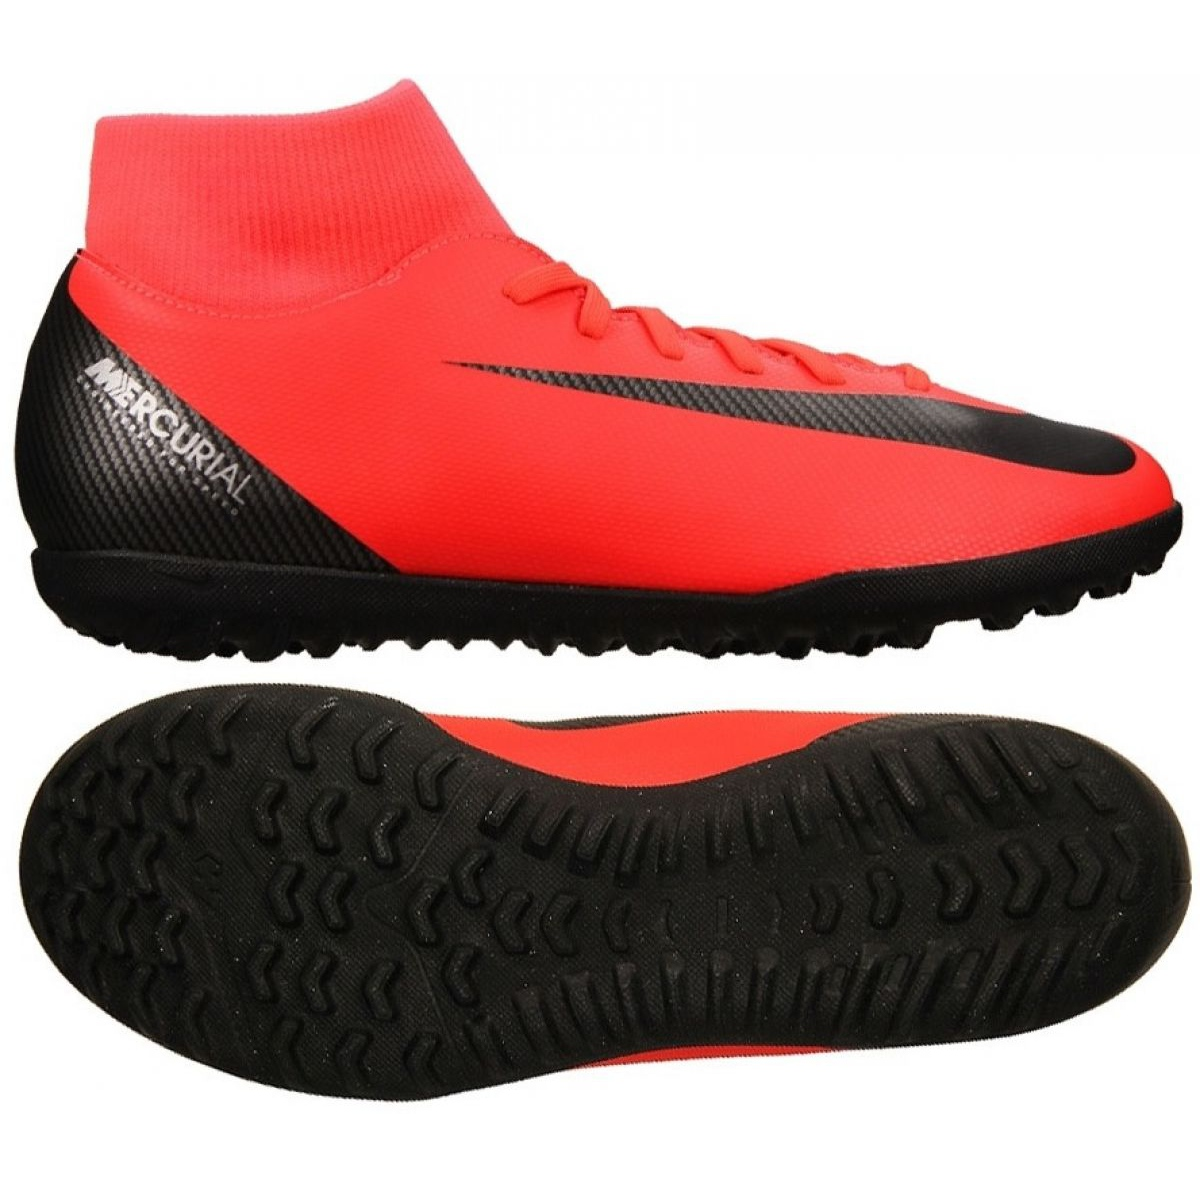 best quality wholesale sales on feet images of Nike Mercurial Superfly X 6 Club CR7 Tf M AJ3570-600 Football Shoes red red